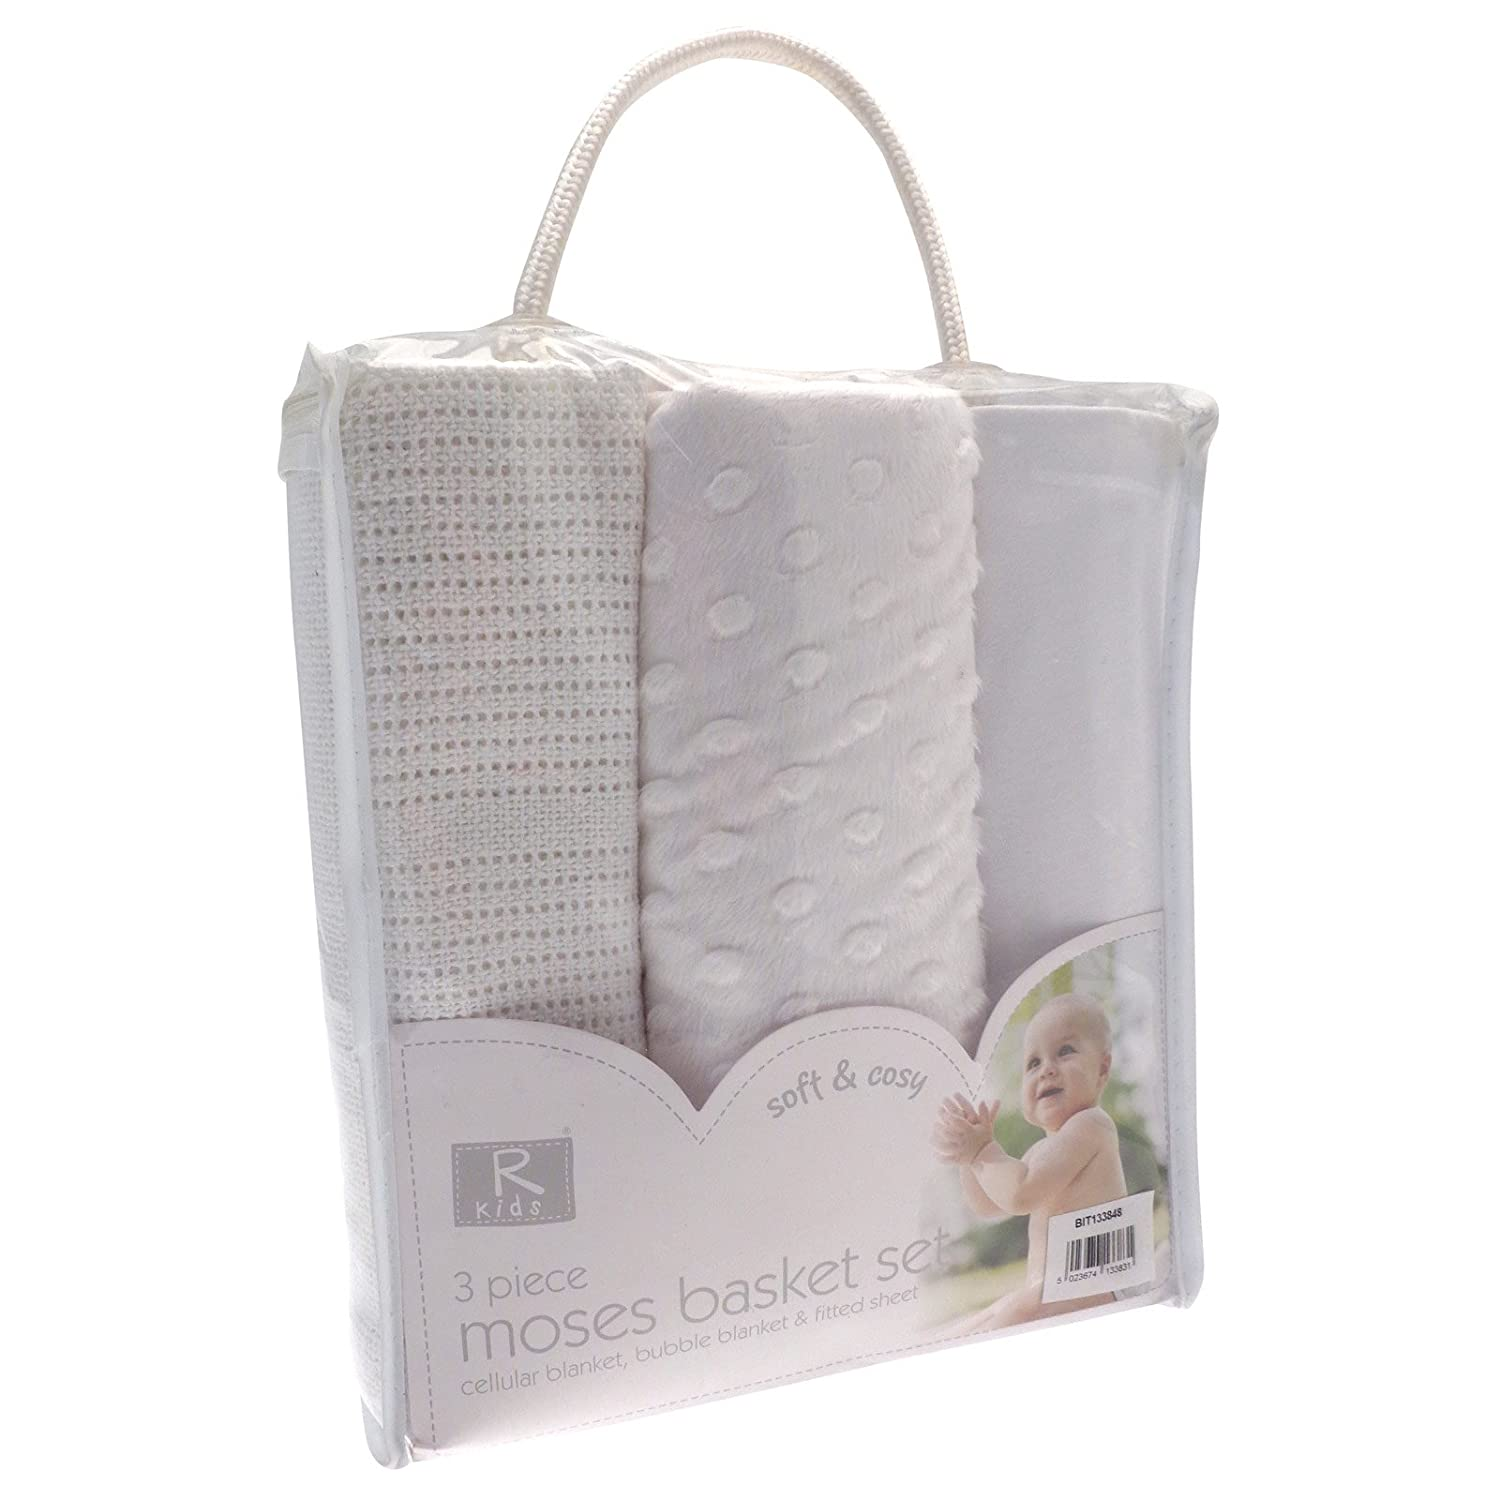 3PC WHITE MOSES BASKET SET BABY BEDDING KIT * CELLULAR BLANKET BUBBLE BLANKET FITTED SHEET BabyCentre